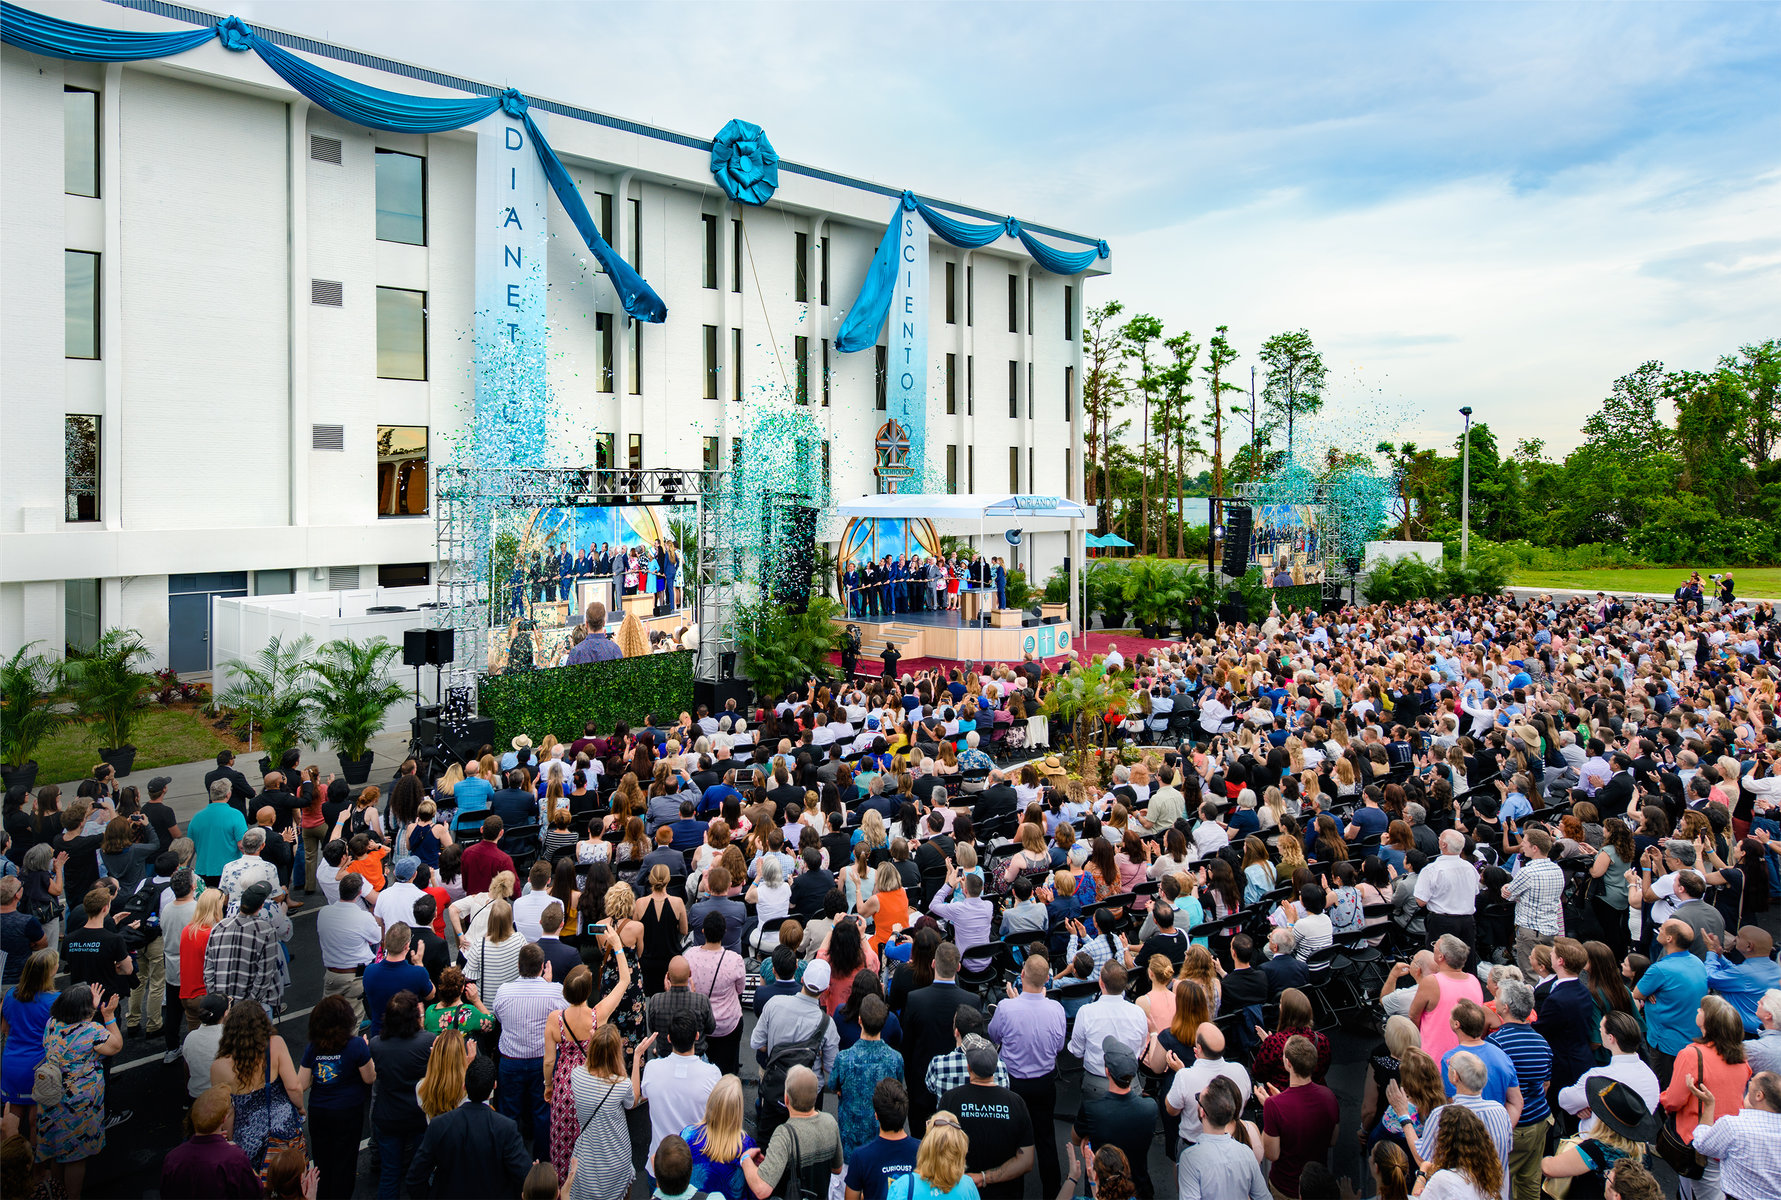 Grand opening of the Ideal Church of Scientology of Orlando